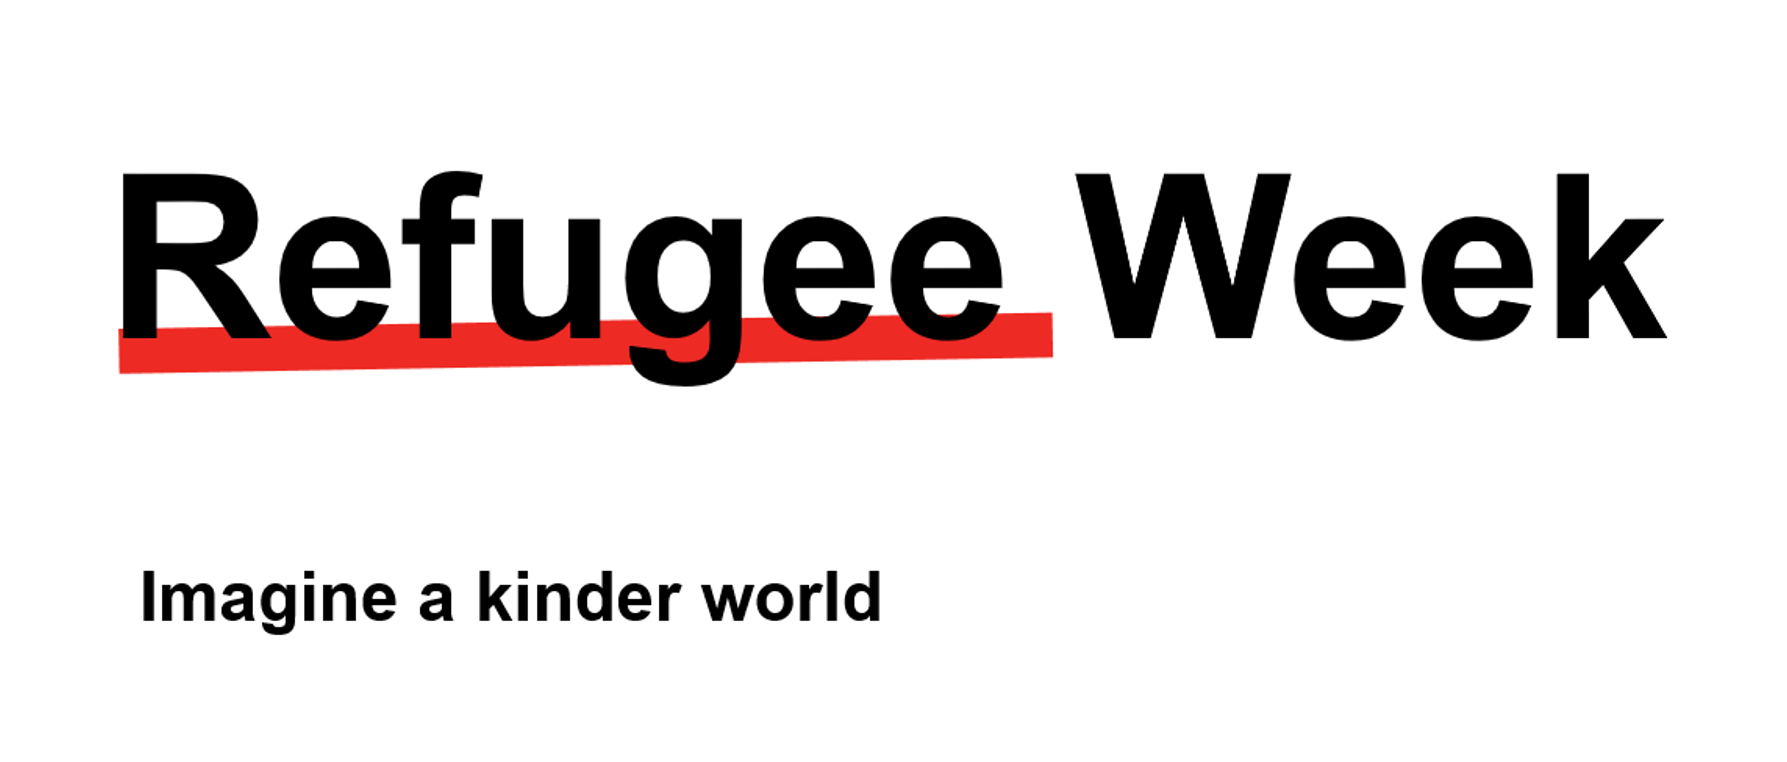 Refugee Week 15 June to 21 June2020